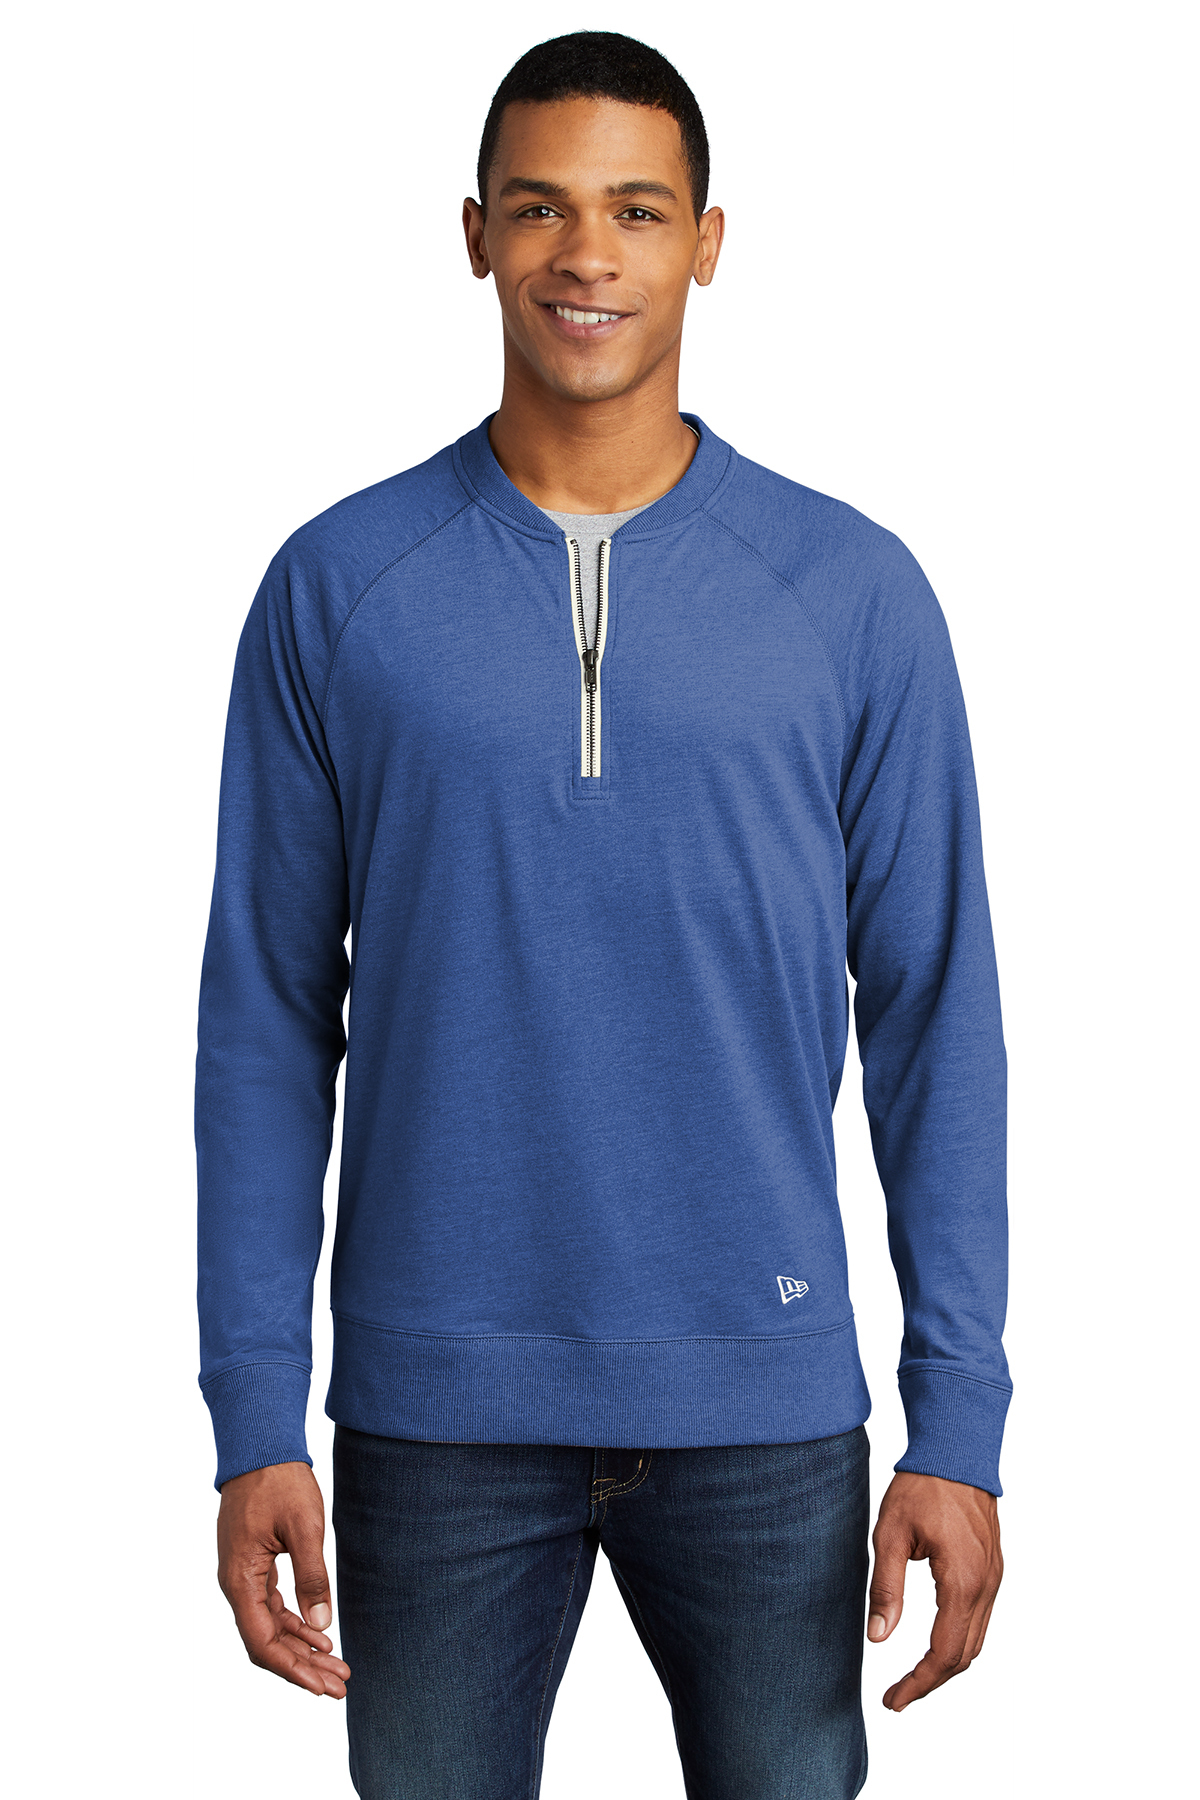 New Era NEA123 - Sueded Cotton Blend 1/4-Zip Pullover